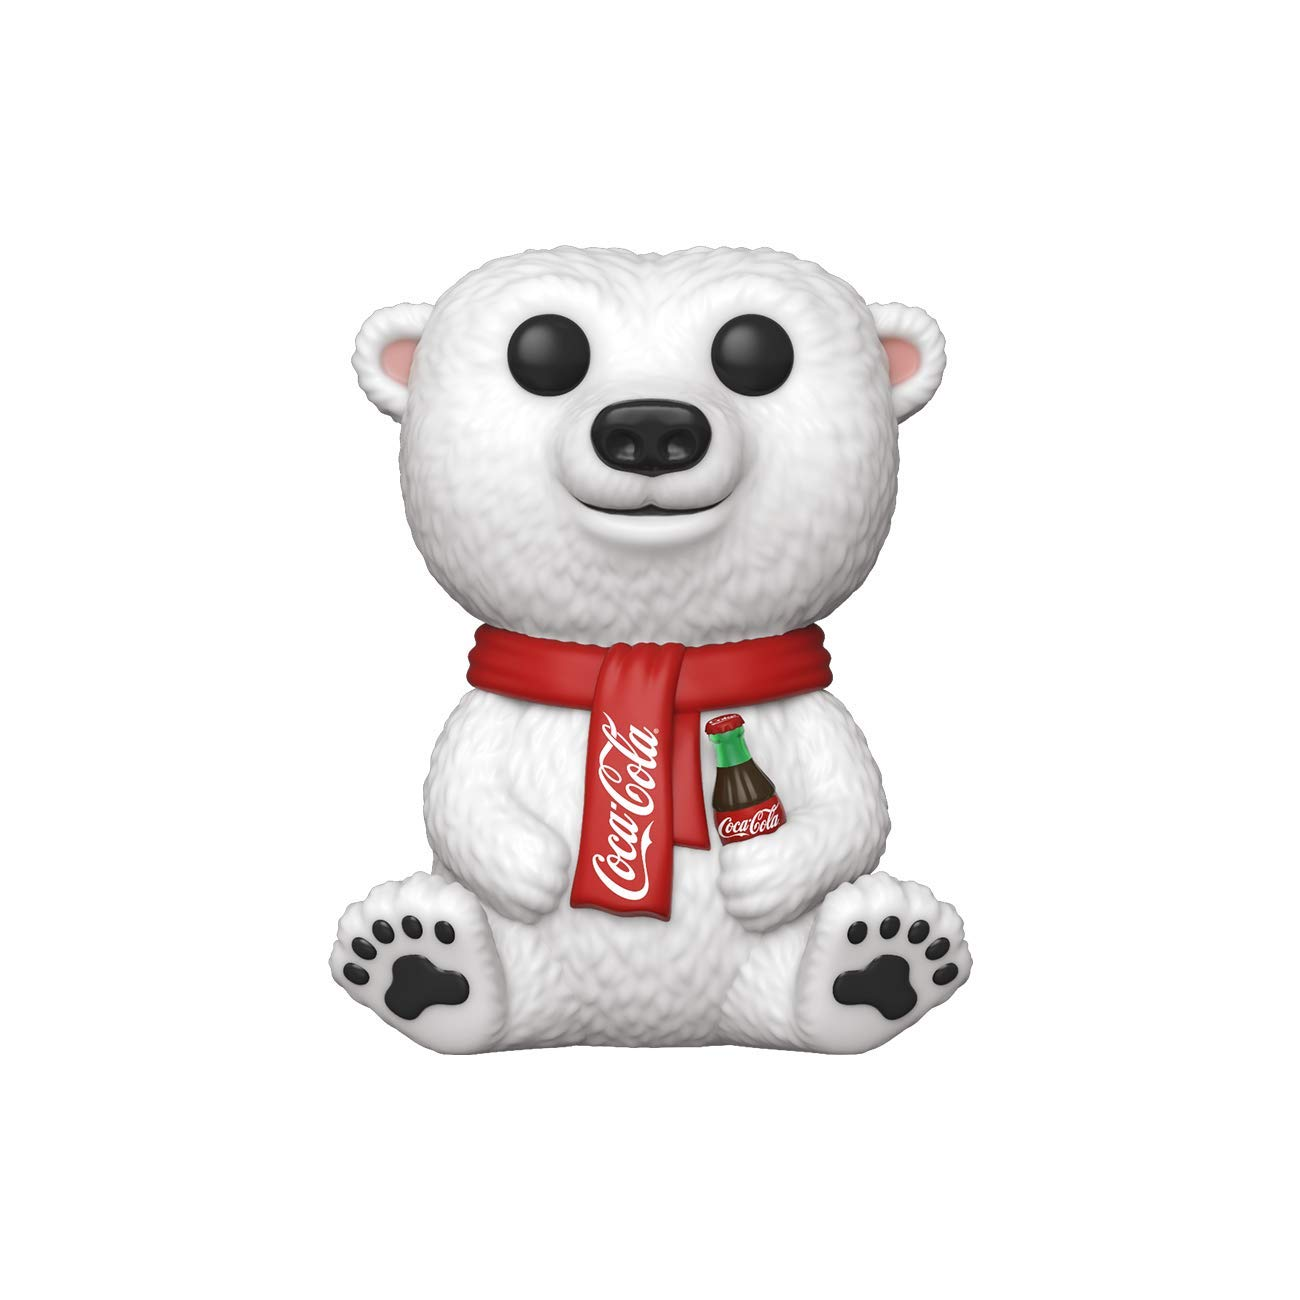 Funko Pop! AD Icons: Coca-Cola - Polar Bear, Multicolor, Model:41732